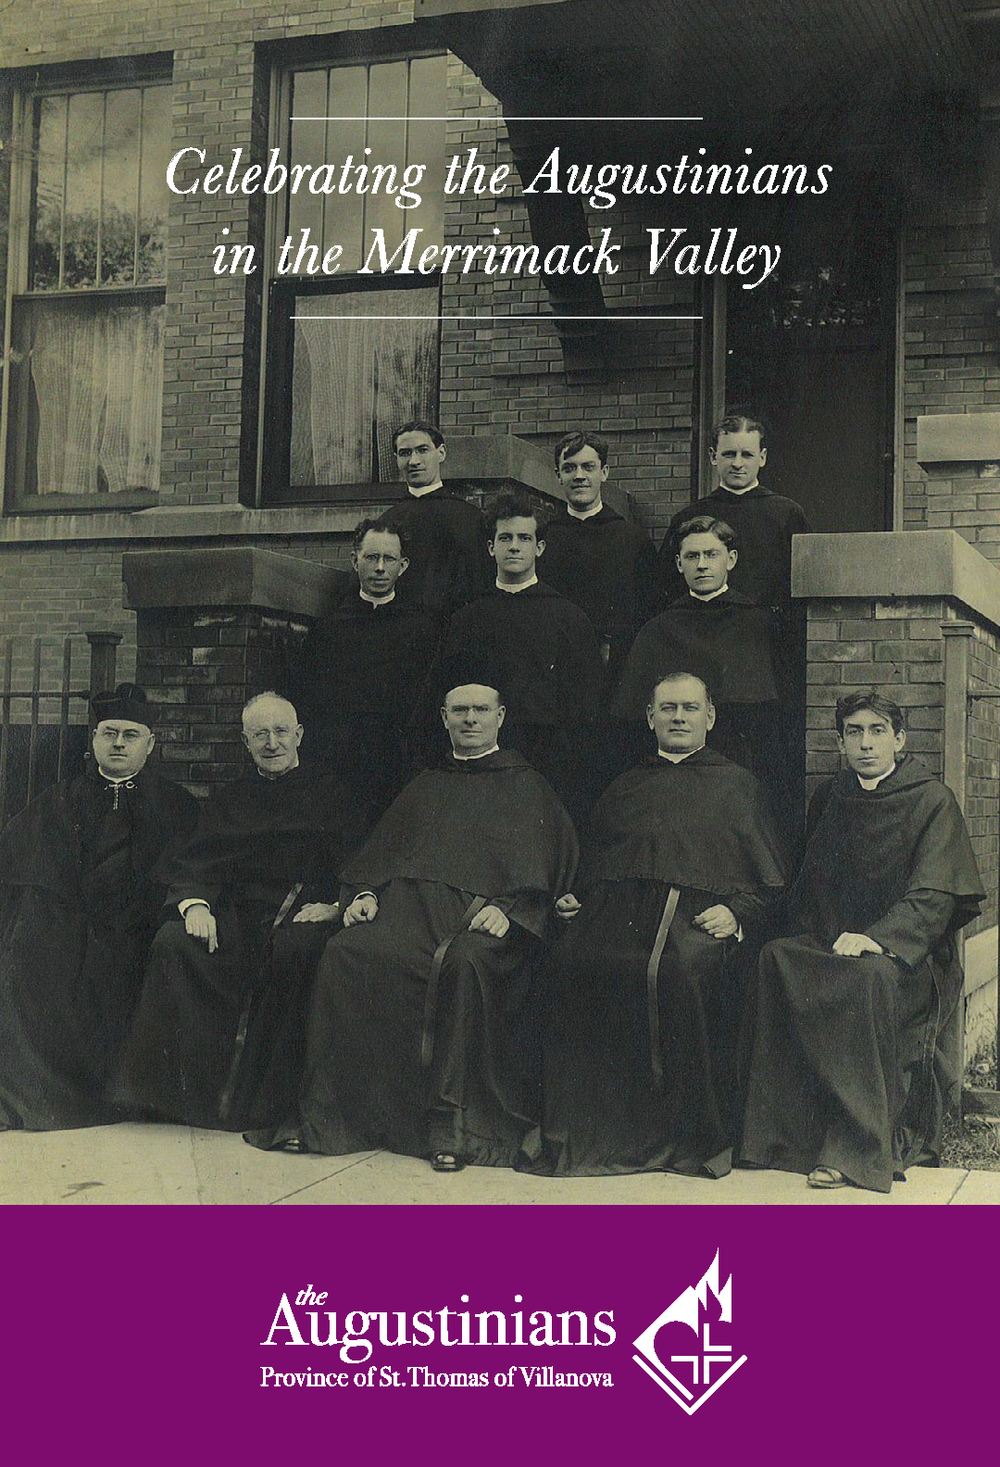 Celebrating the Augustinians in the Merrimack Valley